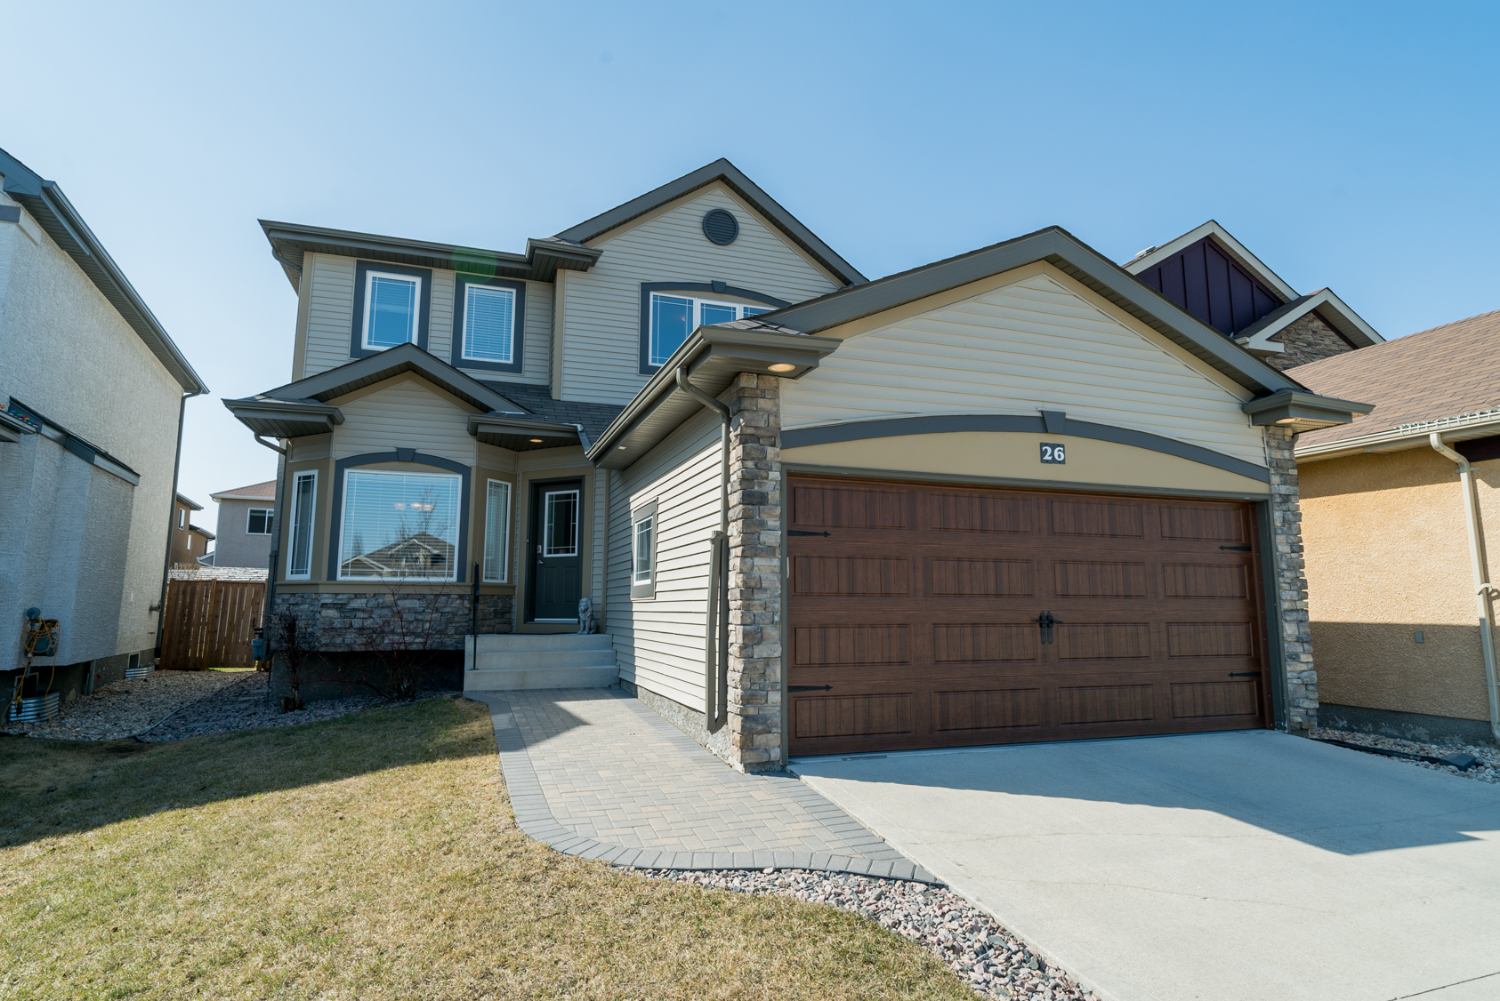 Main Photo: 26 Ironweed Road | Sage Creek Winnipeg